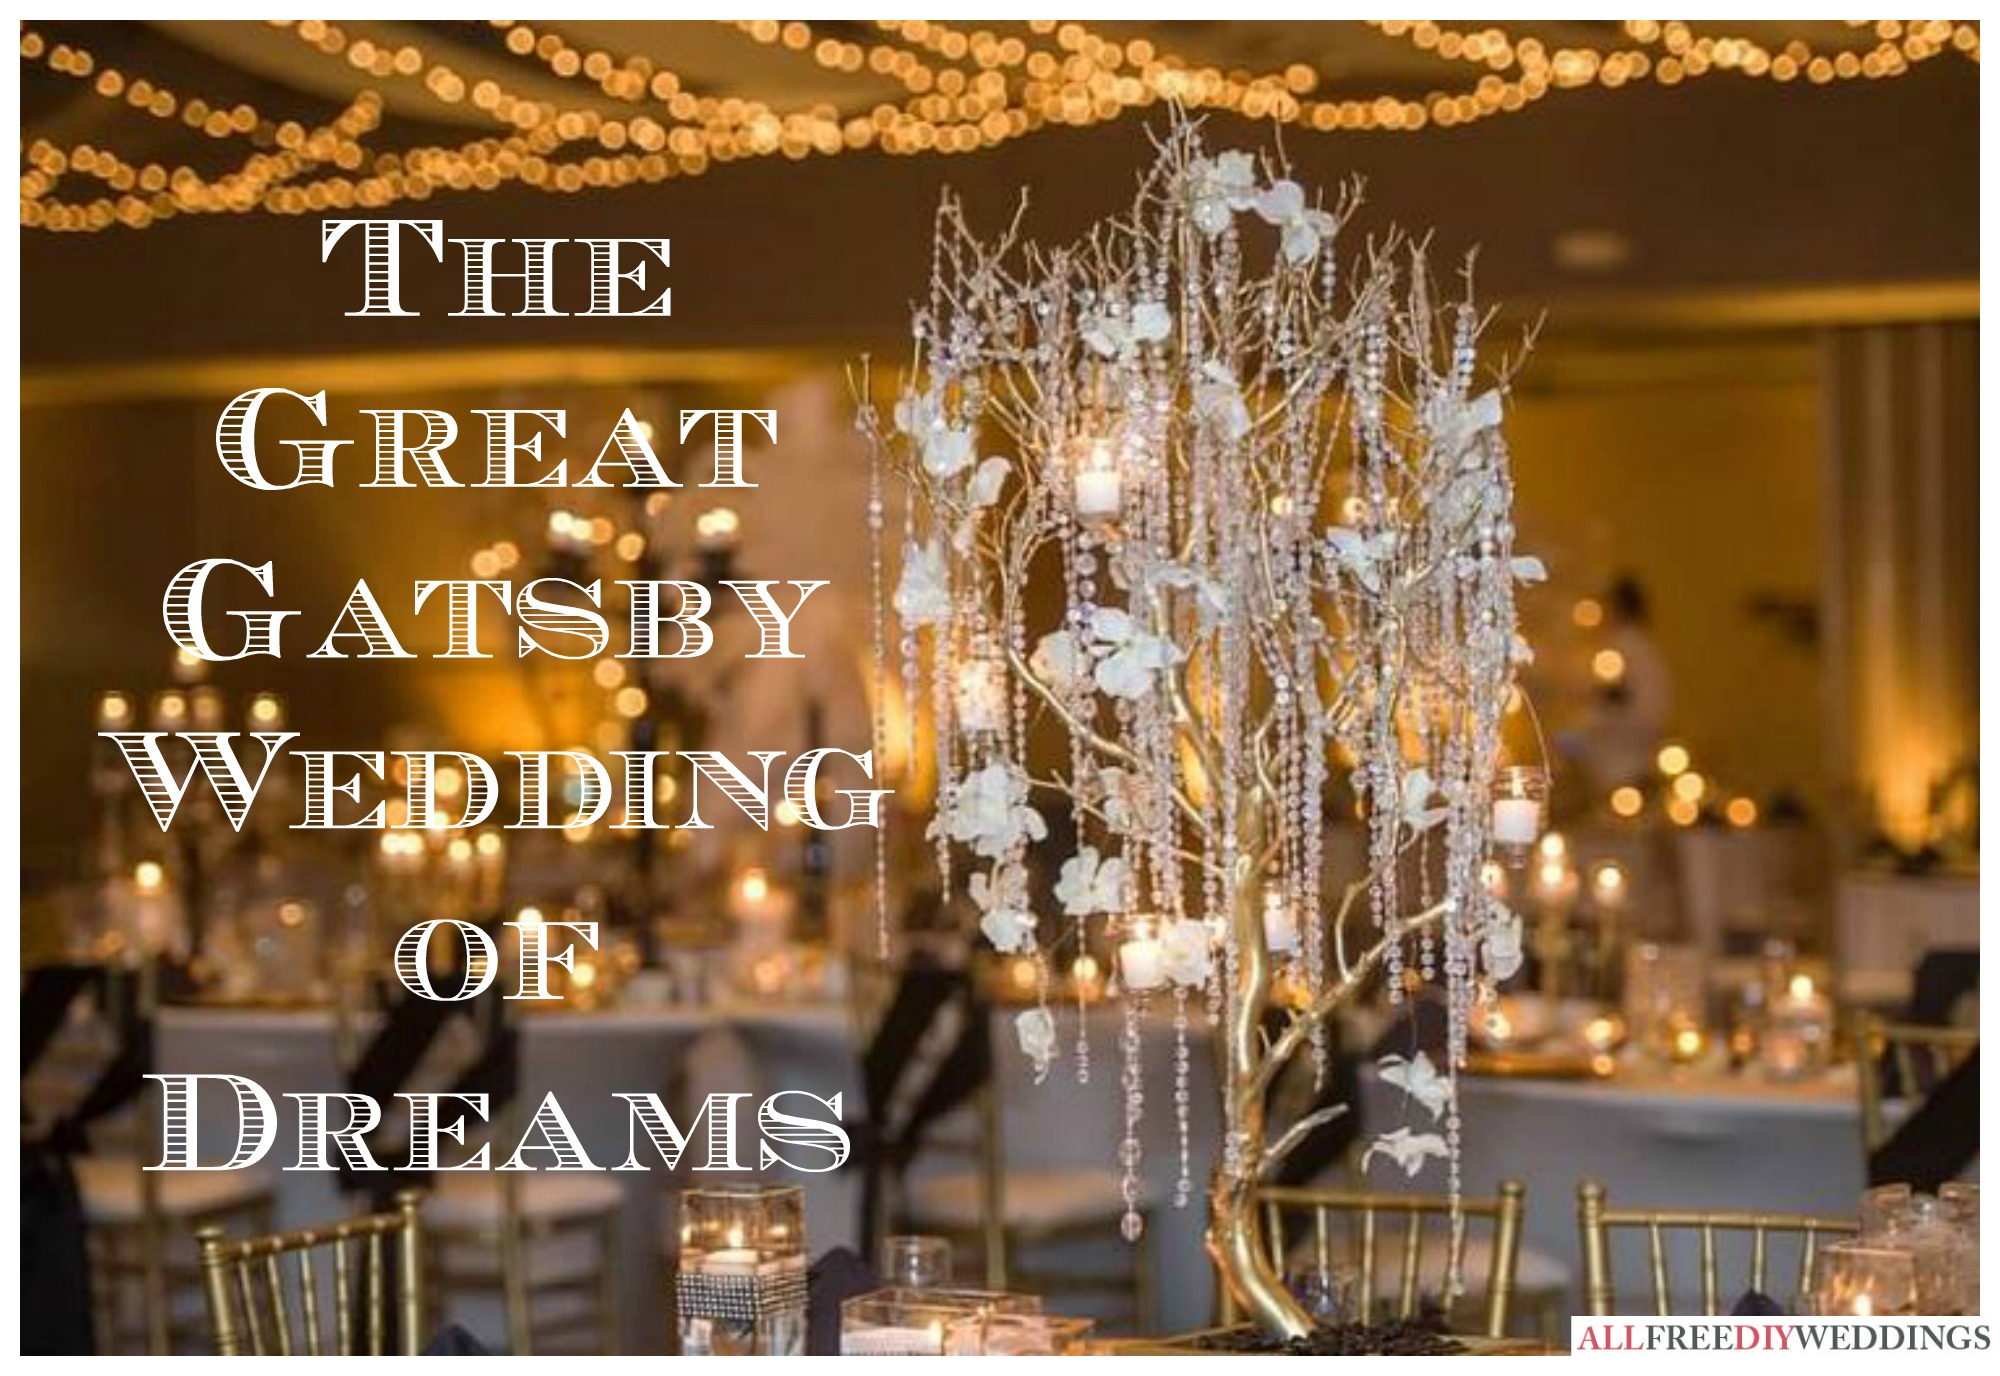 The great gatsby wedding of dreams favecrafts for Great decor